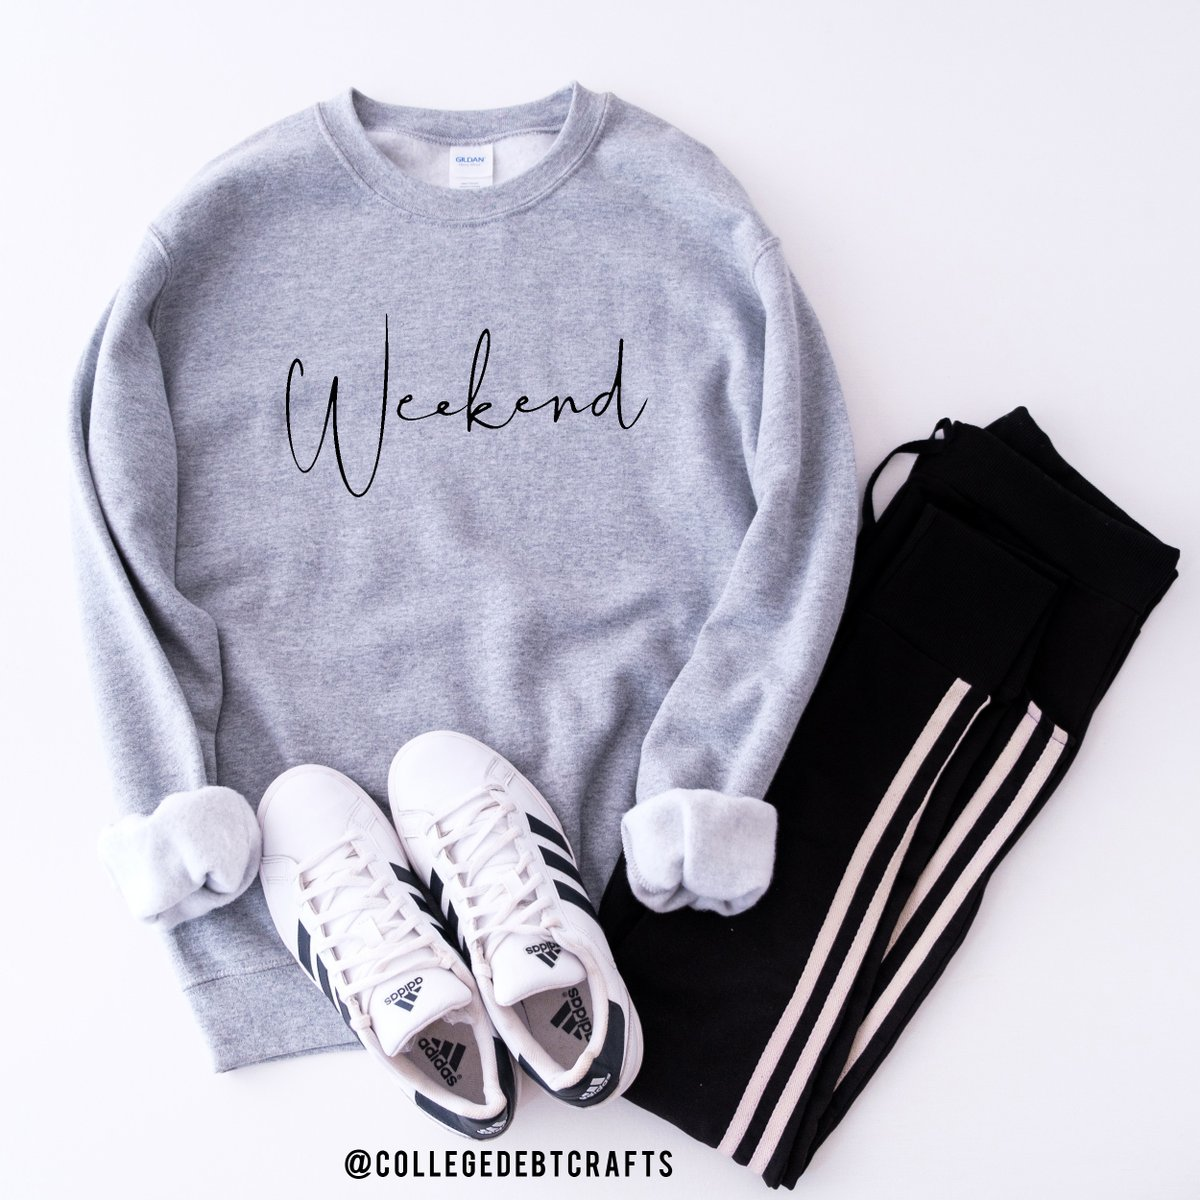 Hello weekend! -  New to the shop... get yours here! ➡️  - #weekends #weekend #collegedebtcrafts #indy #shoplocal #flatlay #etsysellersofinstagram #indybossbabe #lifestyle #etsy #etsyshop